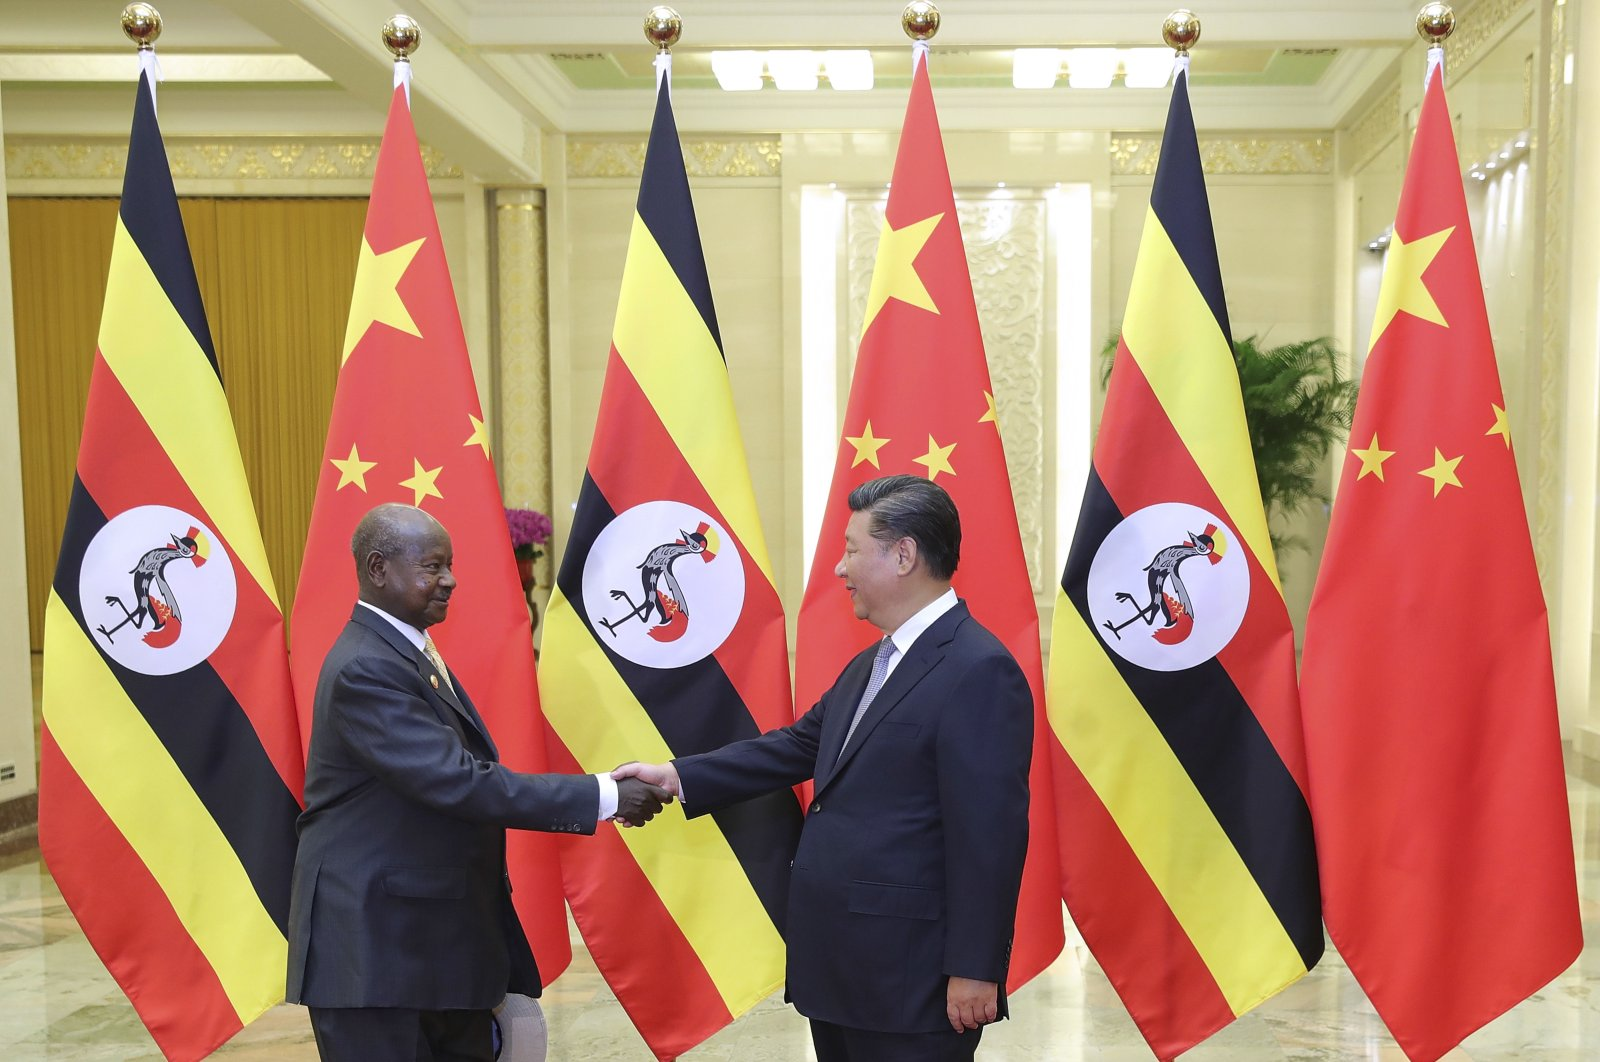 China's President Xi Jinping, right, shakes hands with Uganda's President Yoweri Museveni at the Great Hall of the People in Beijing, China, Sept. 6, 2018. (AP Photo)